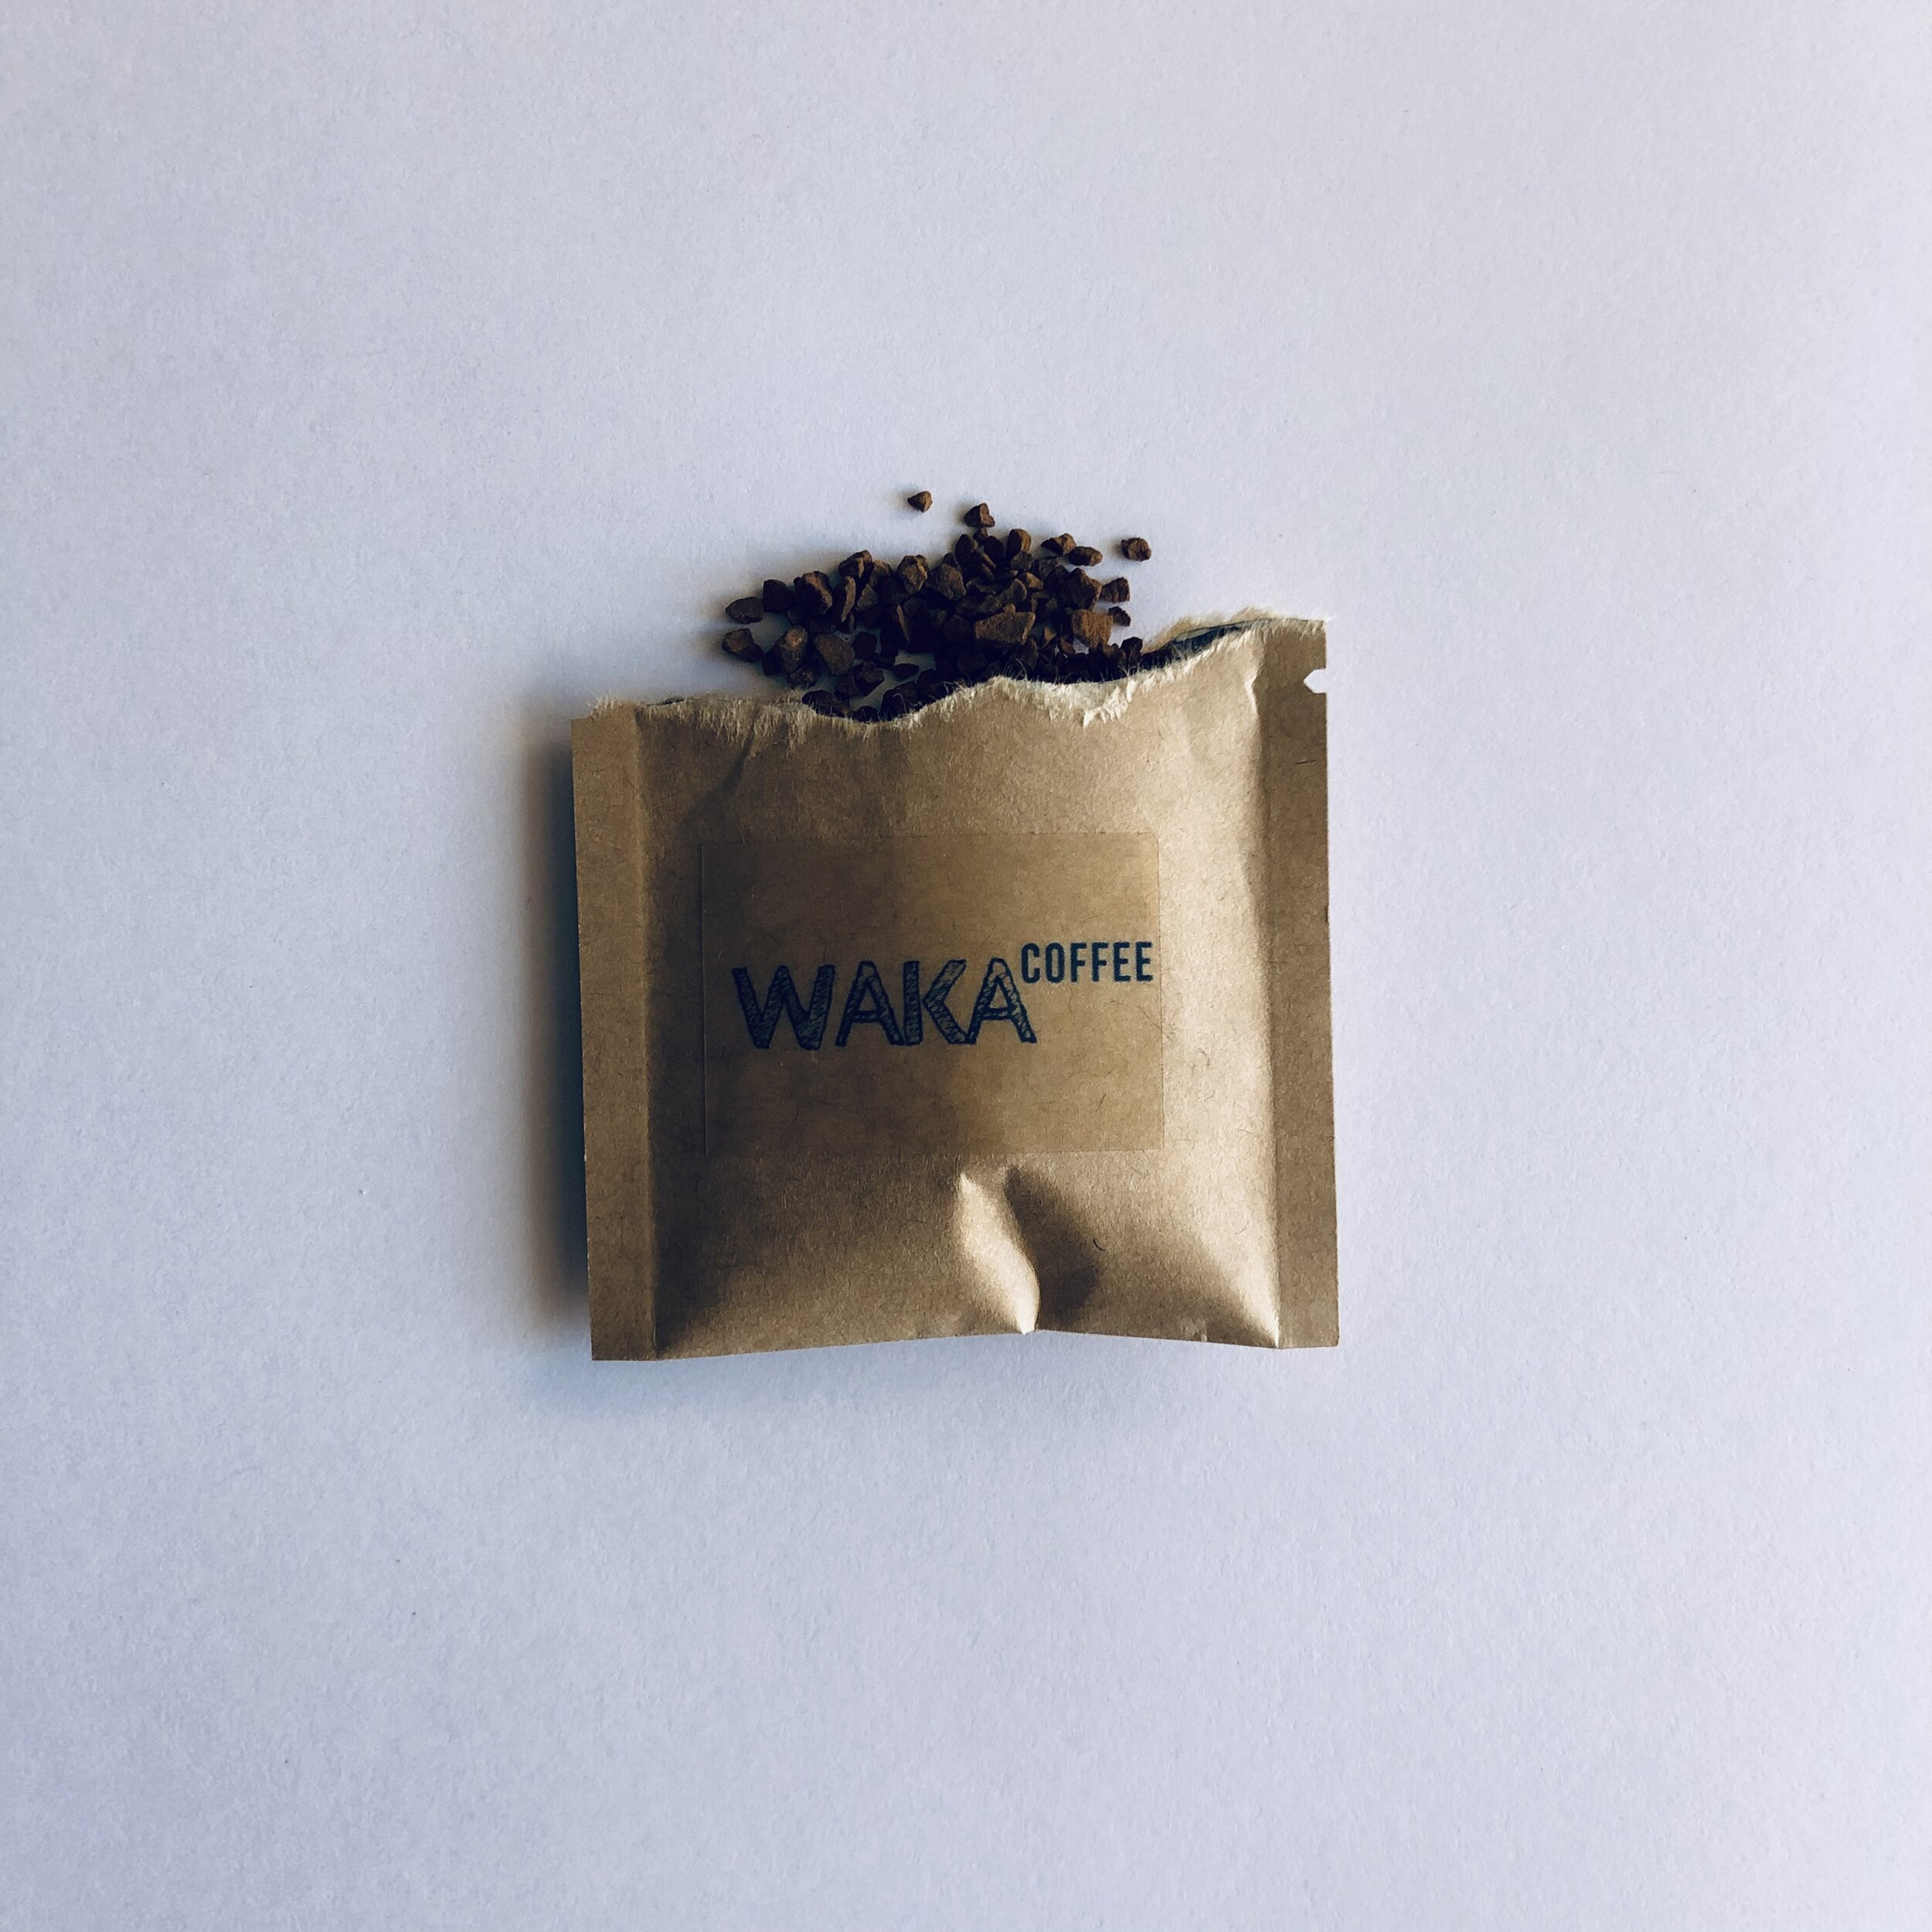 waka coffee box